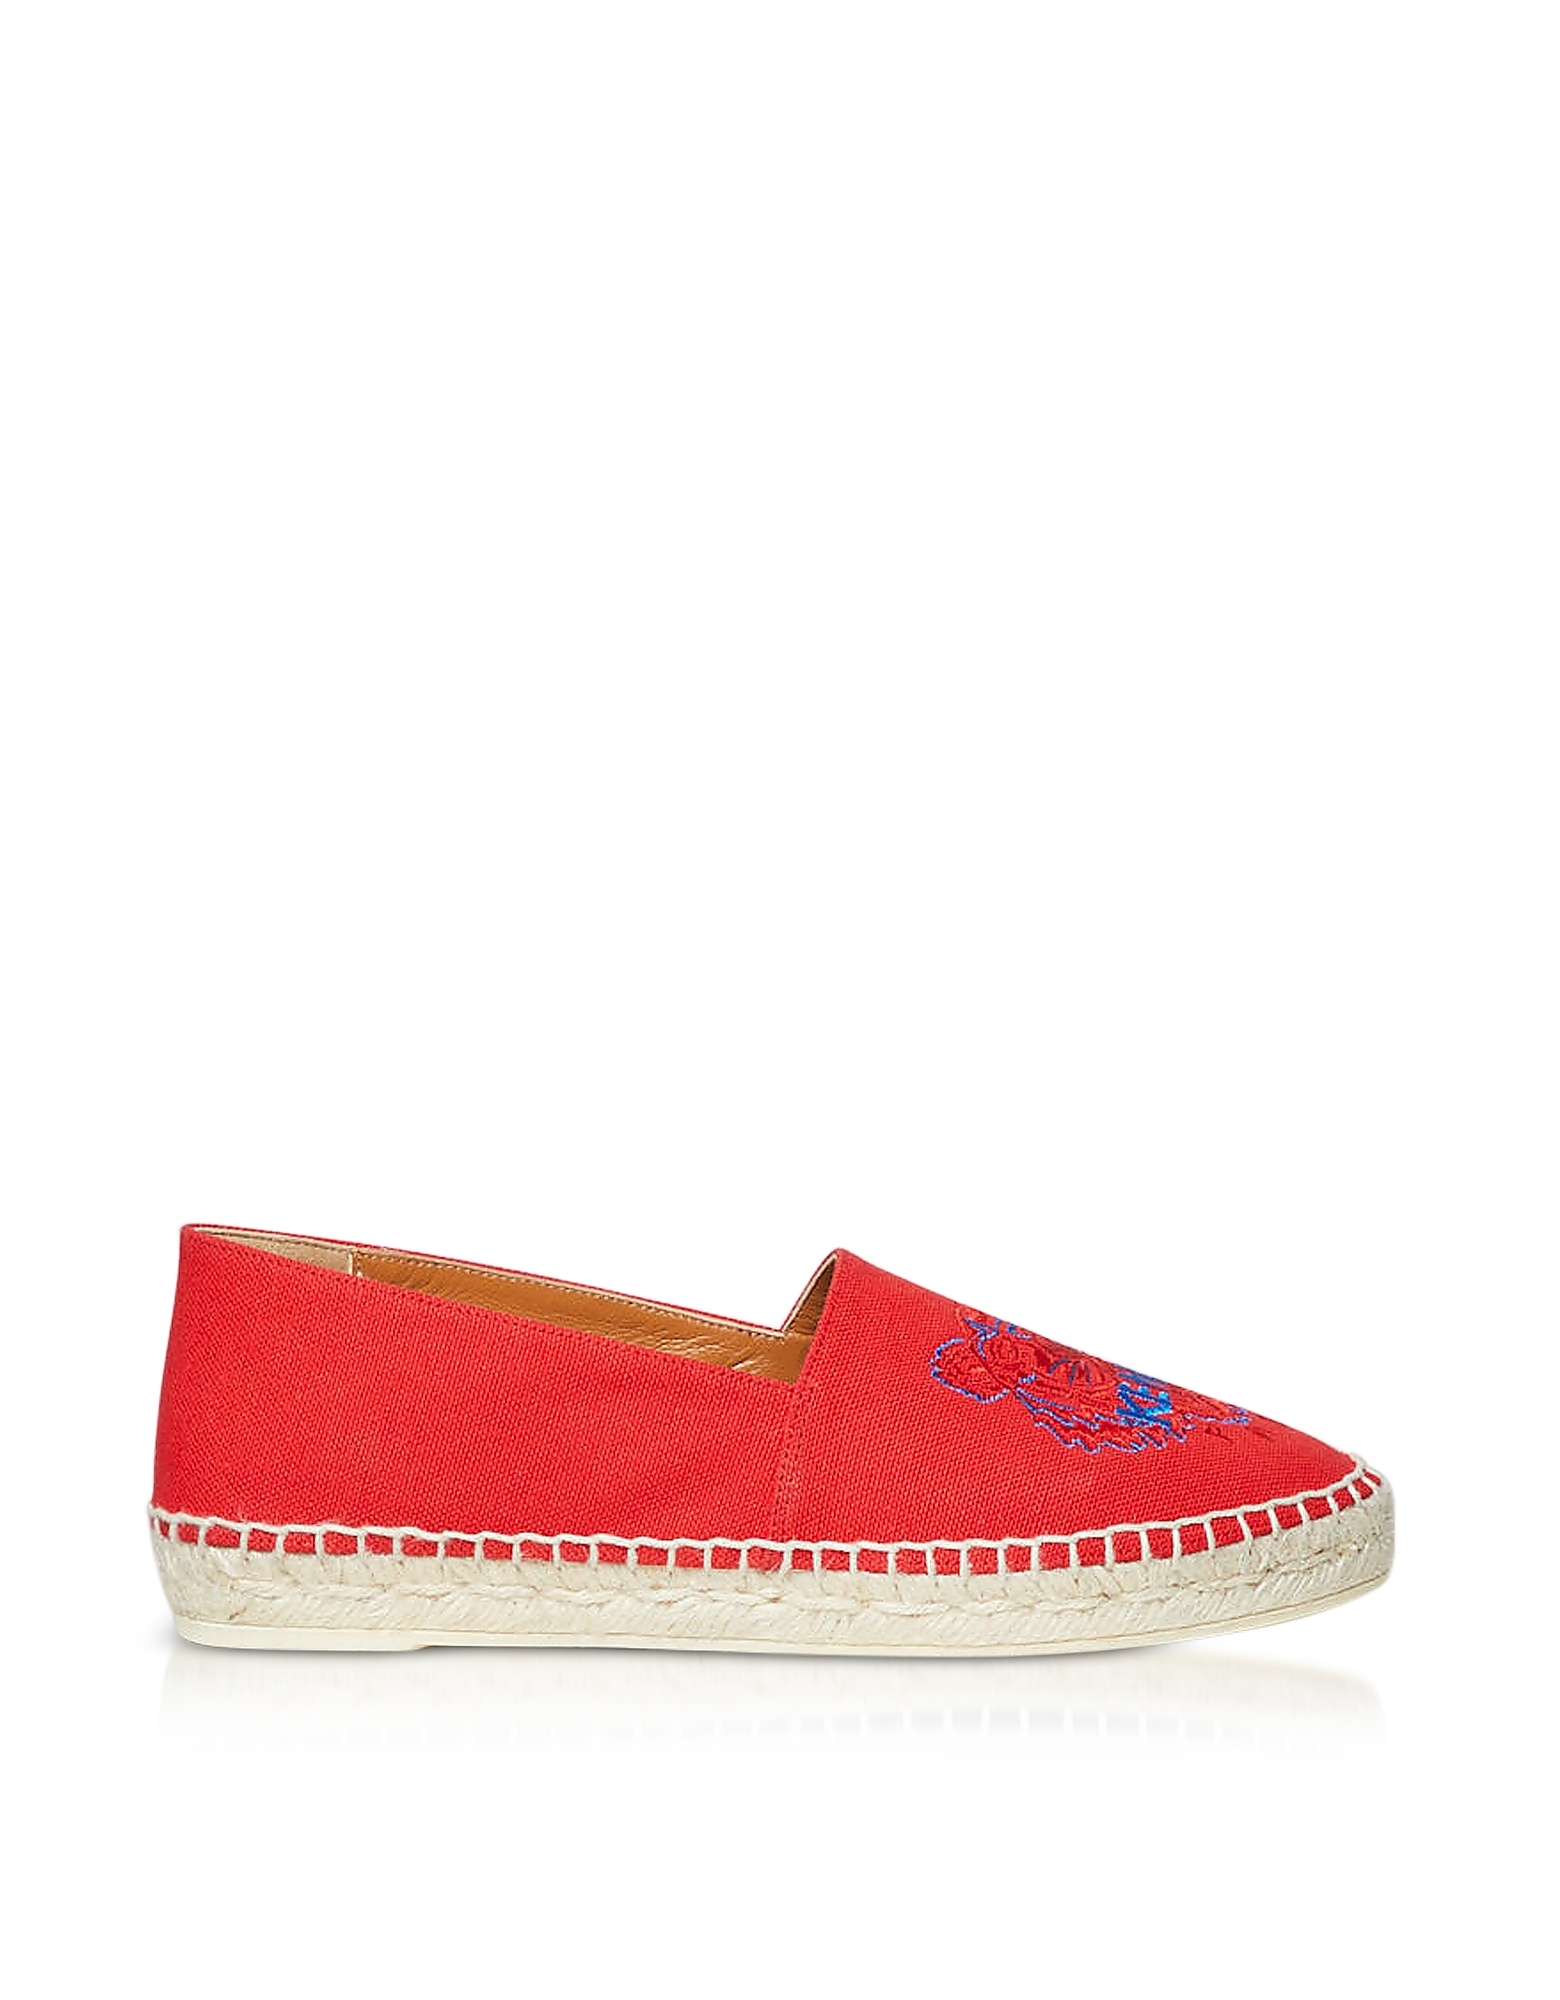 Kenzo Shoes, Red Canvas and Jute Espadrilles